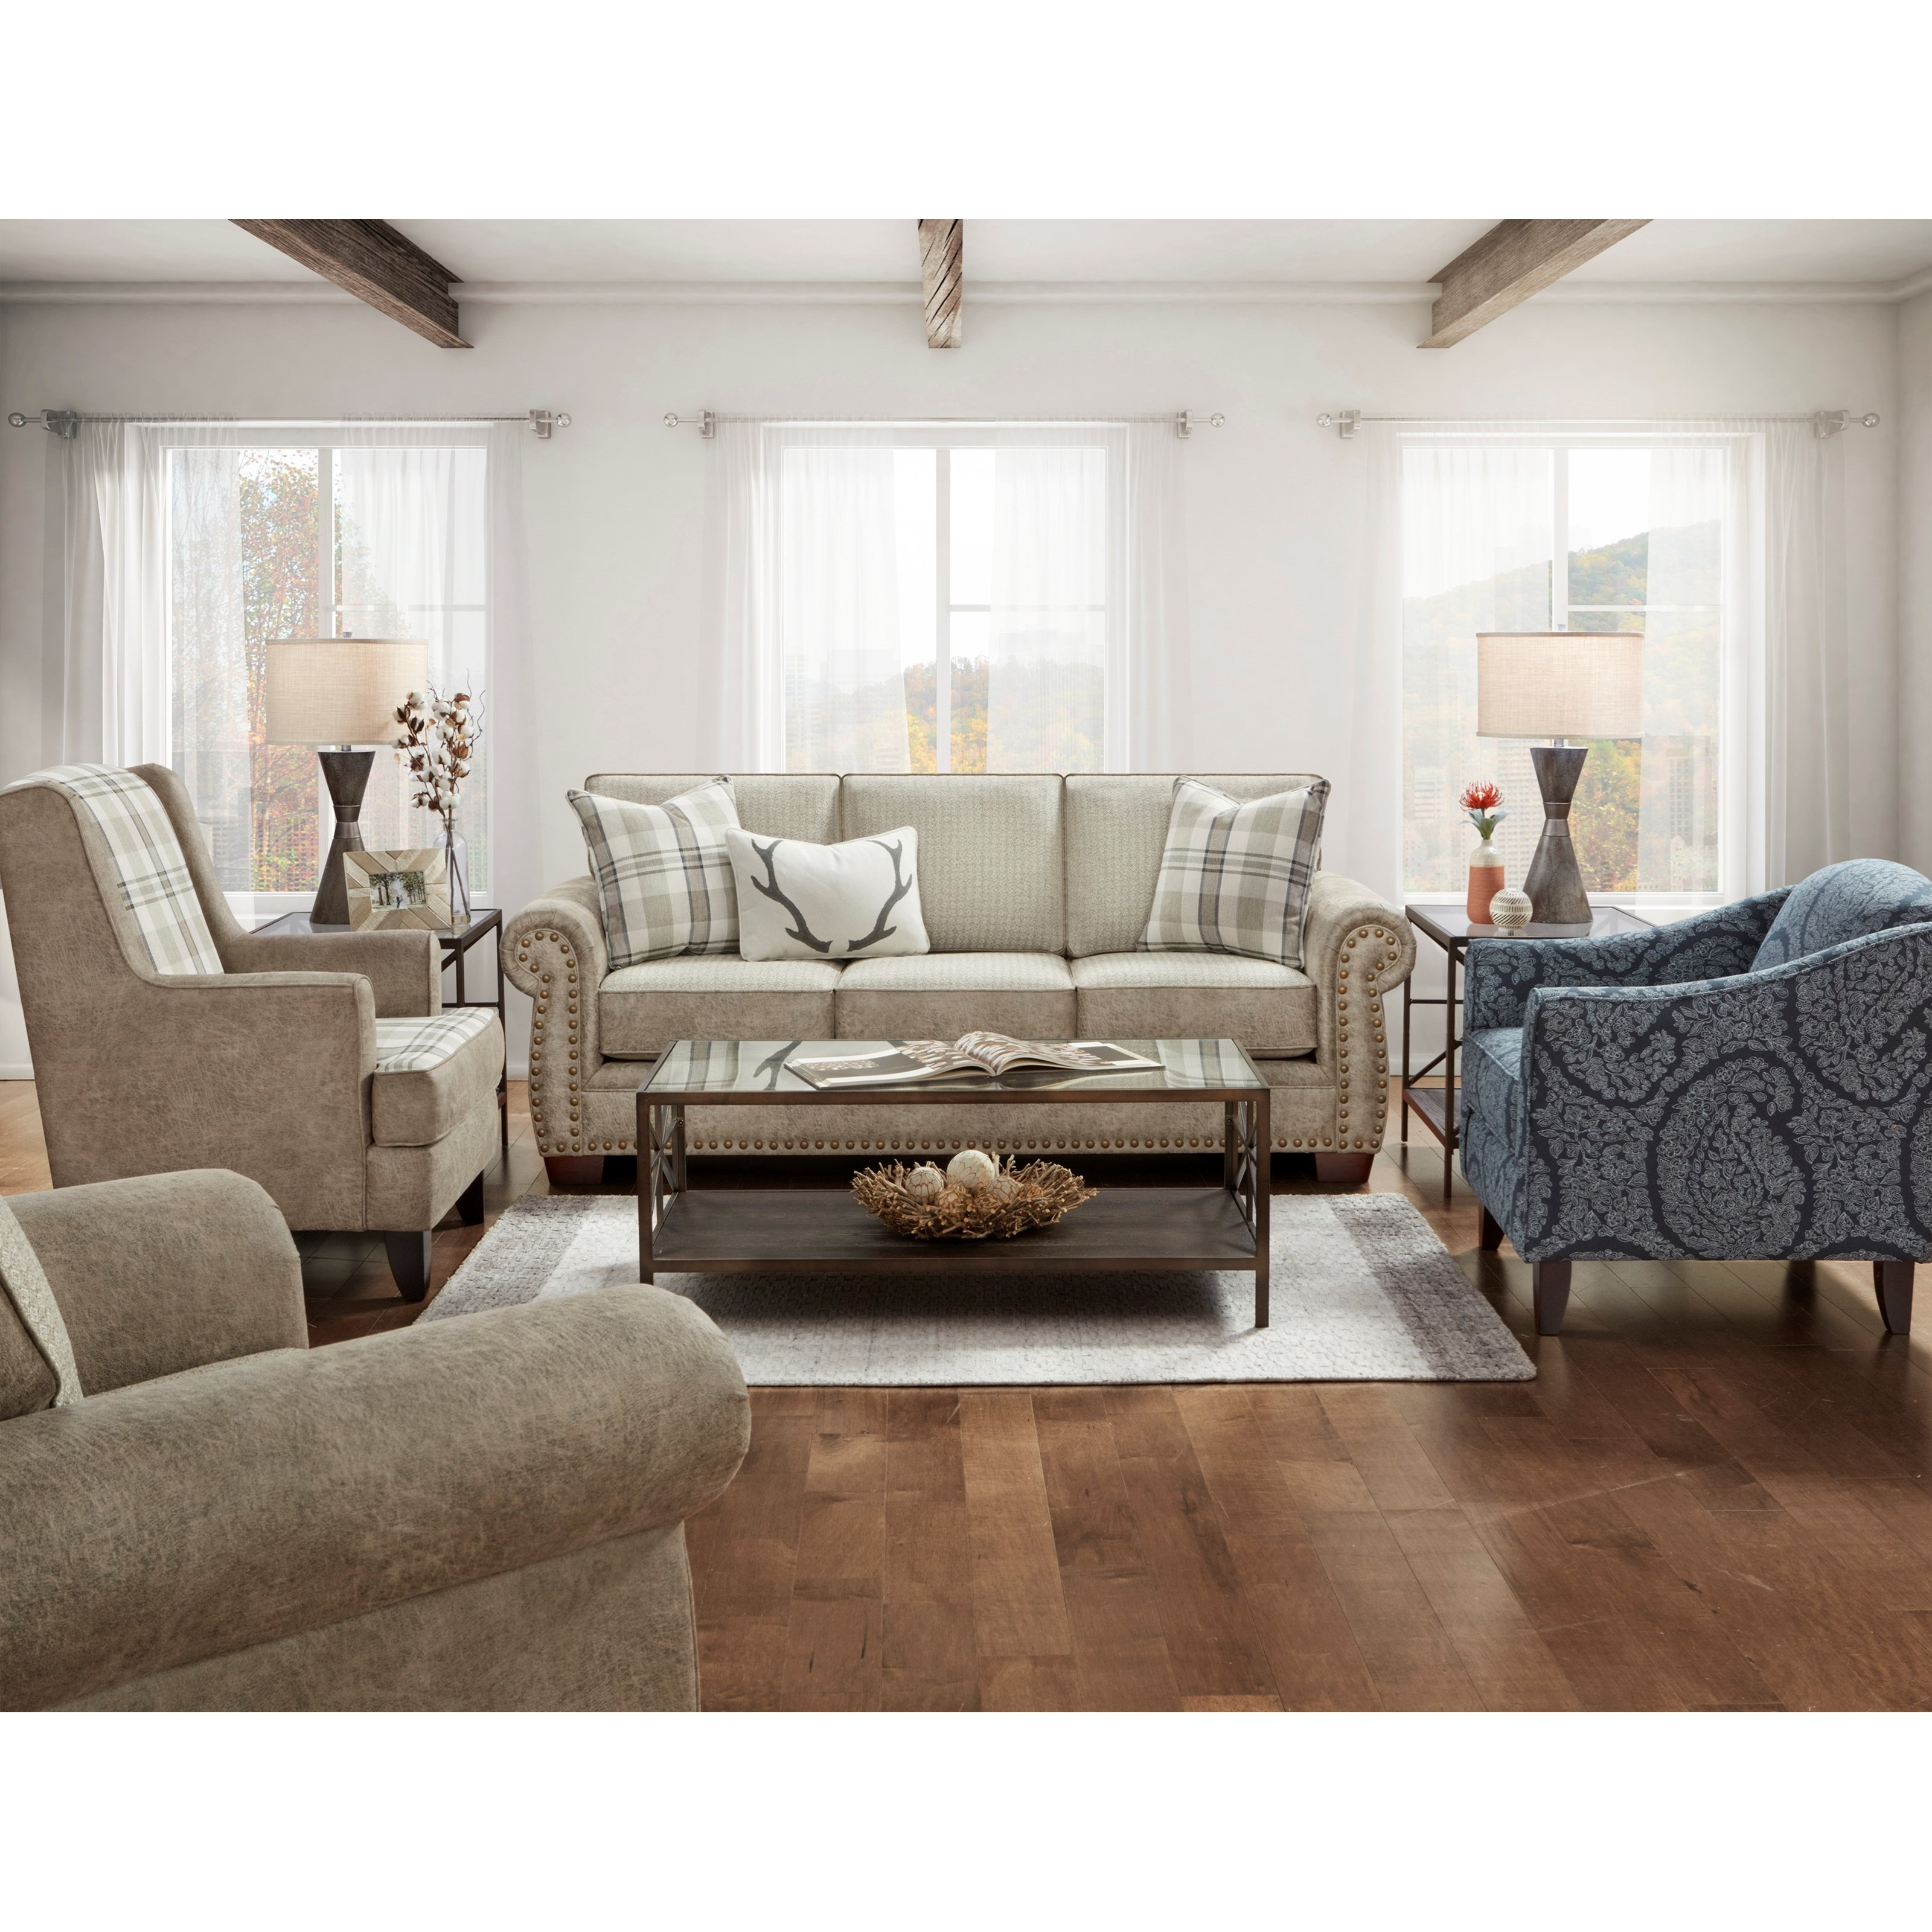 22-00 Living Room Group by Fusion Furniture at Wilcox Furniture